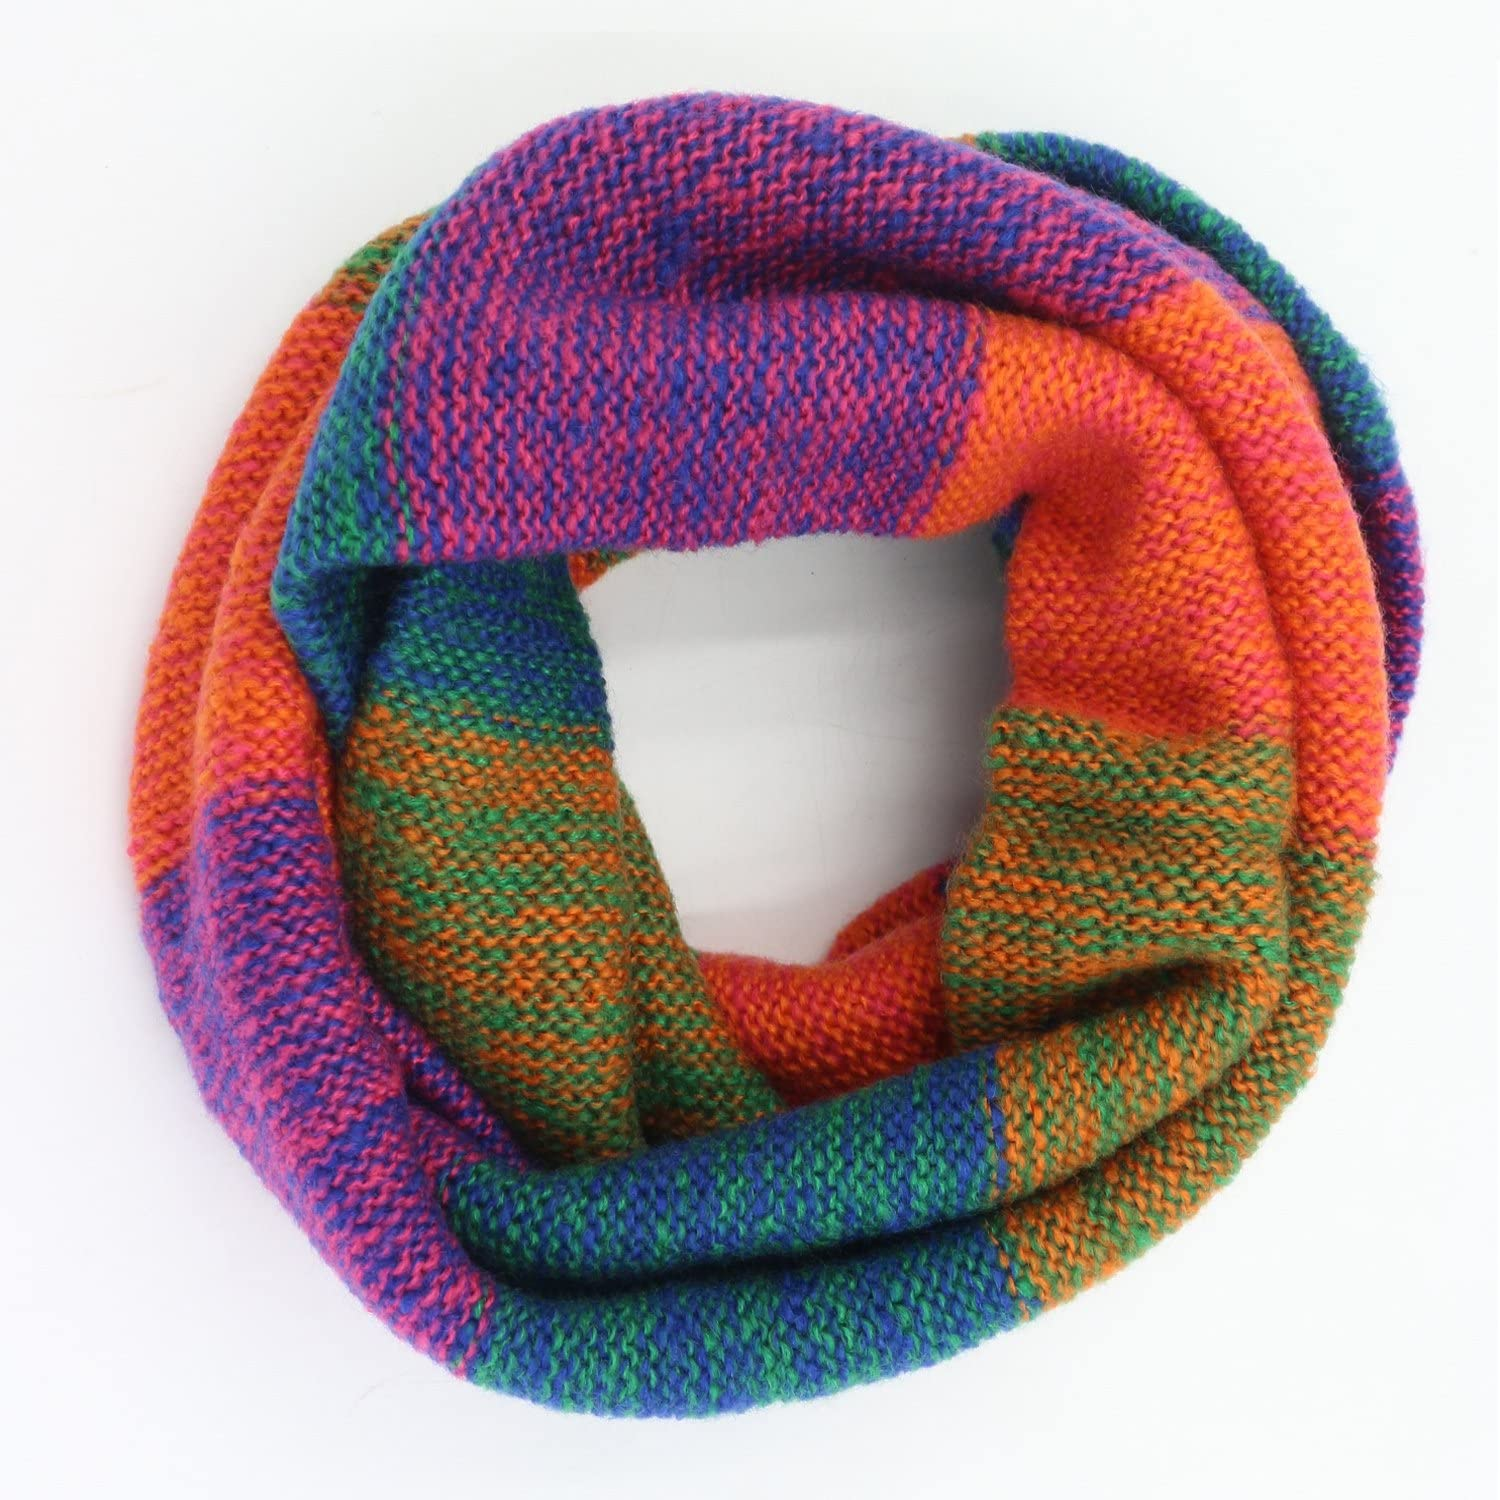 Leories Winter Warm Infinity Scarf Thick Knit Circle Loop Scarf Neck Warmer